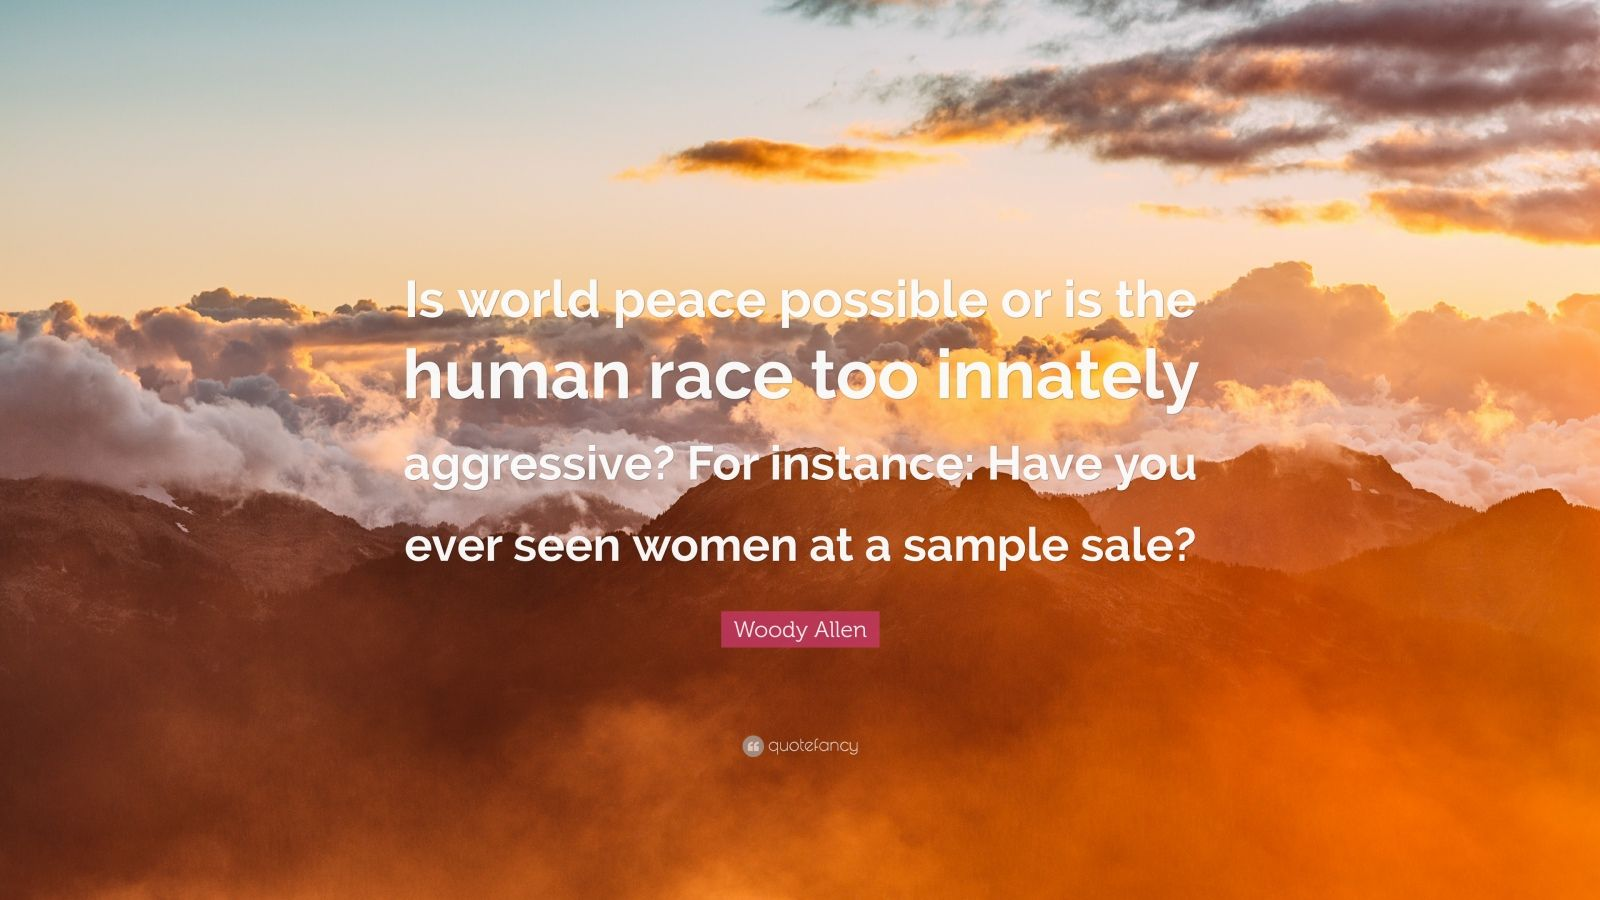 """Woody Allen Quote: """"Is world peace possible or is the human race too innately aggressive? For instance: Have you ever seen women at a sample sale?"""""""